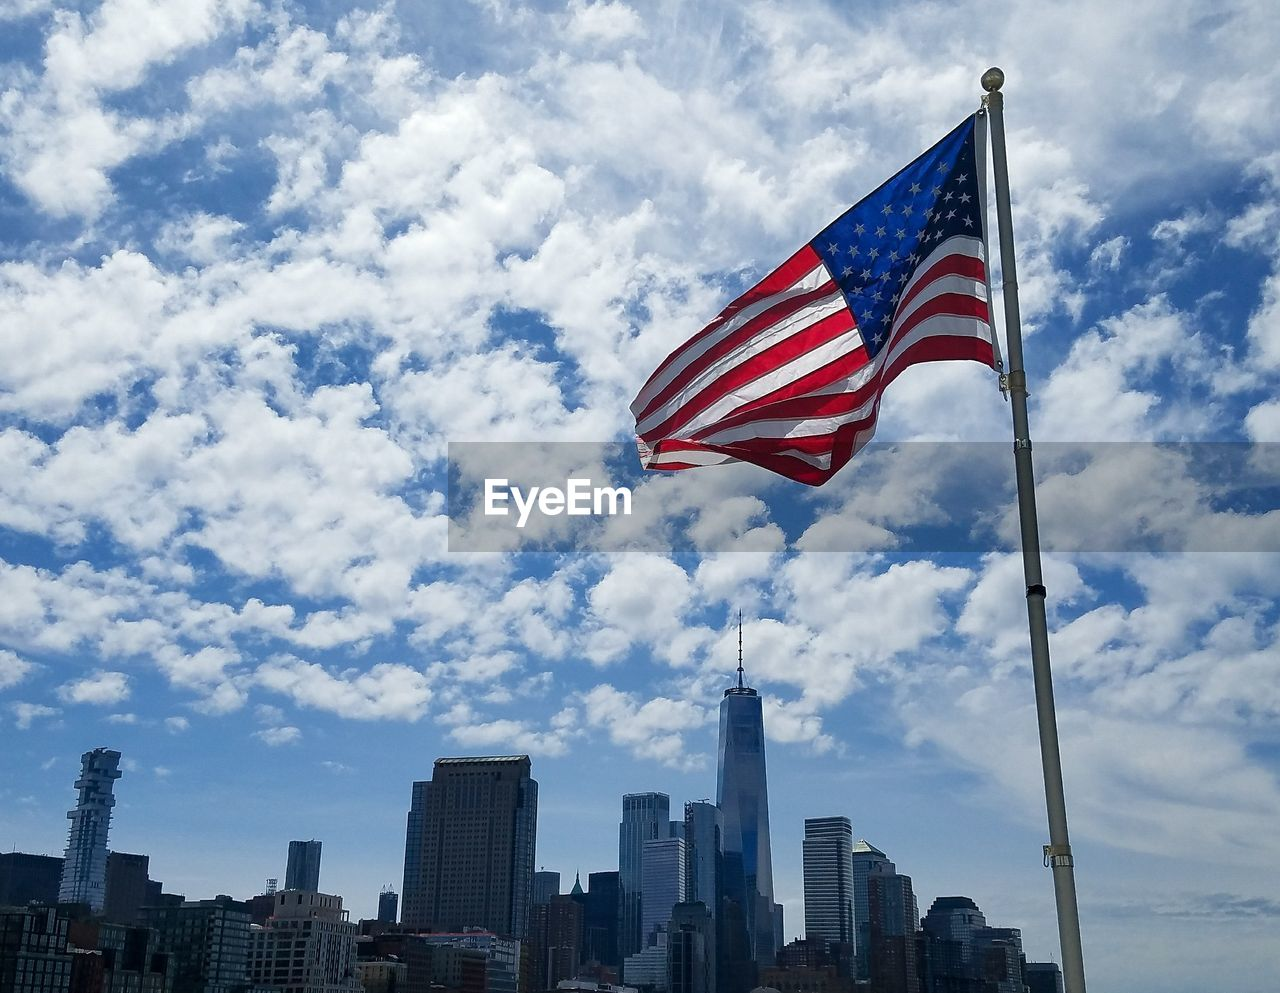 sky, building exterior, cloud - sky, architecture, patriotism, built structure, flag, striped, city, building, nature, low angle view, day, no people, tall - high, landscape, office building exterior, outdoors, wind, cityscape, skyscraper, financial district, independence